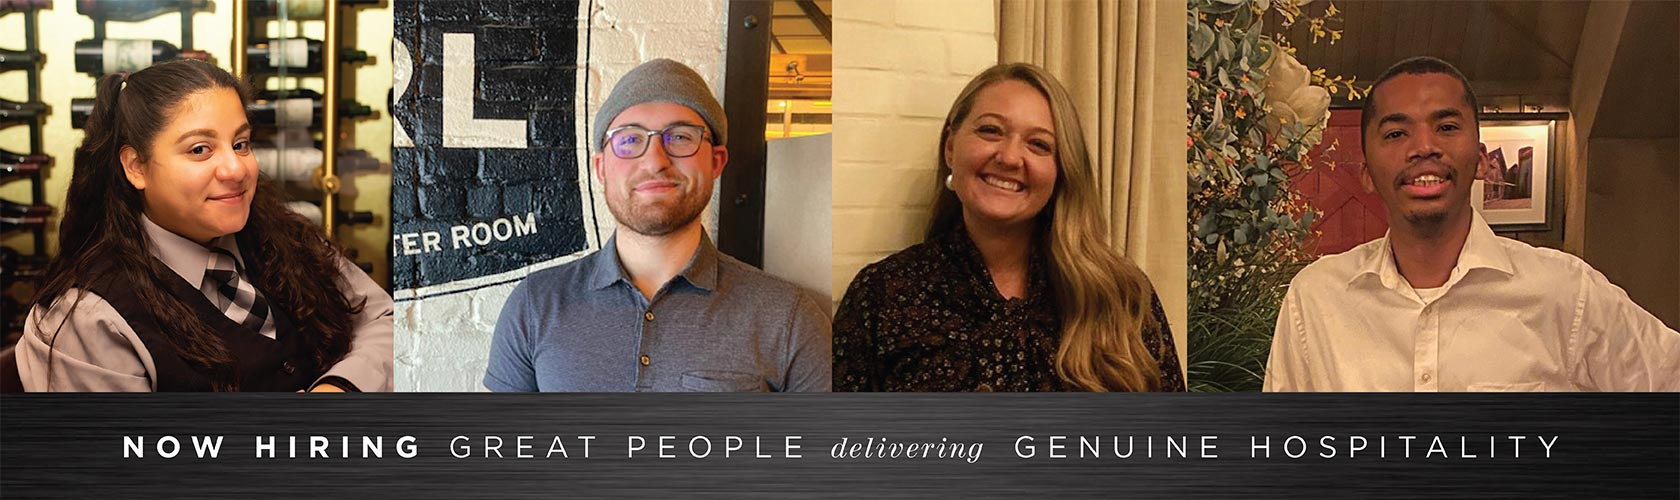 Now Hiring Great People with Genuine Hospitality